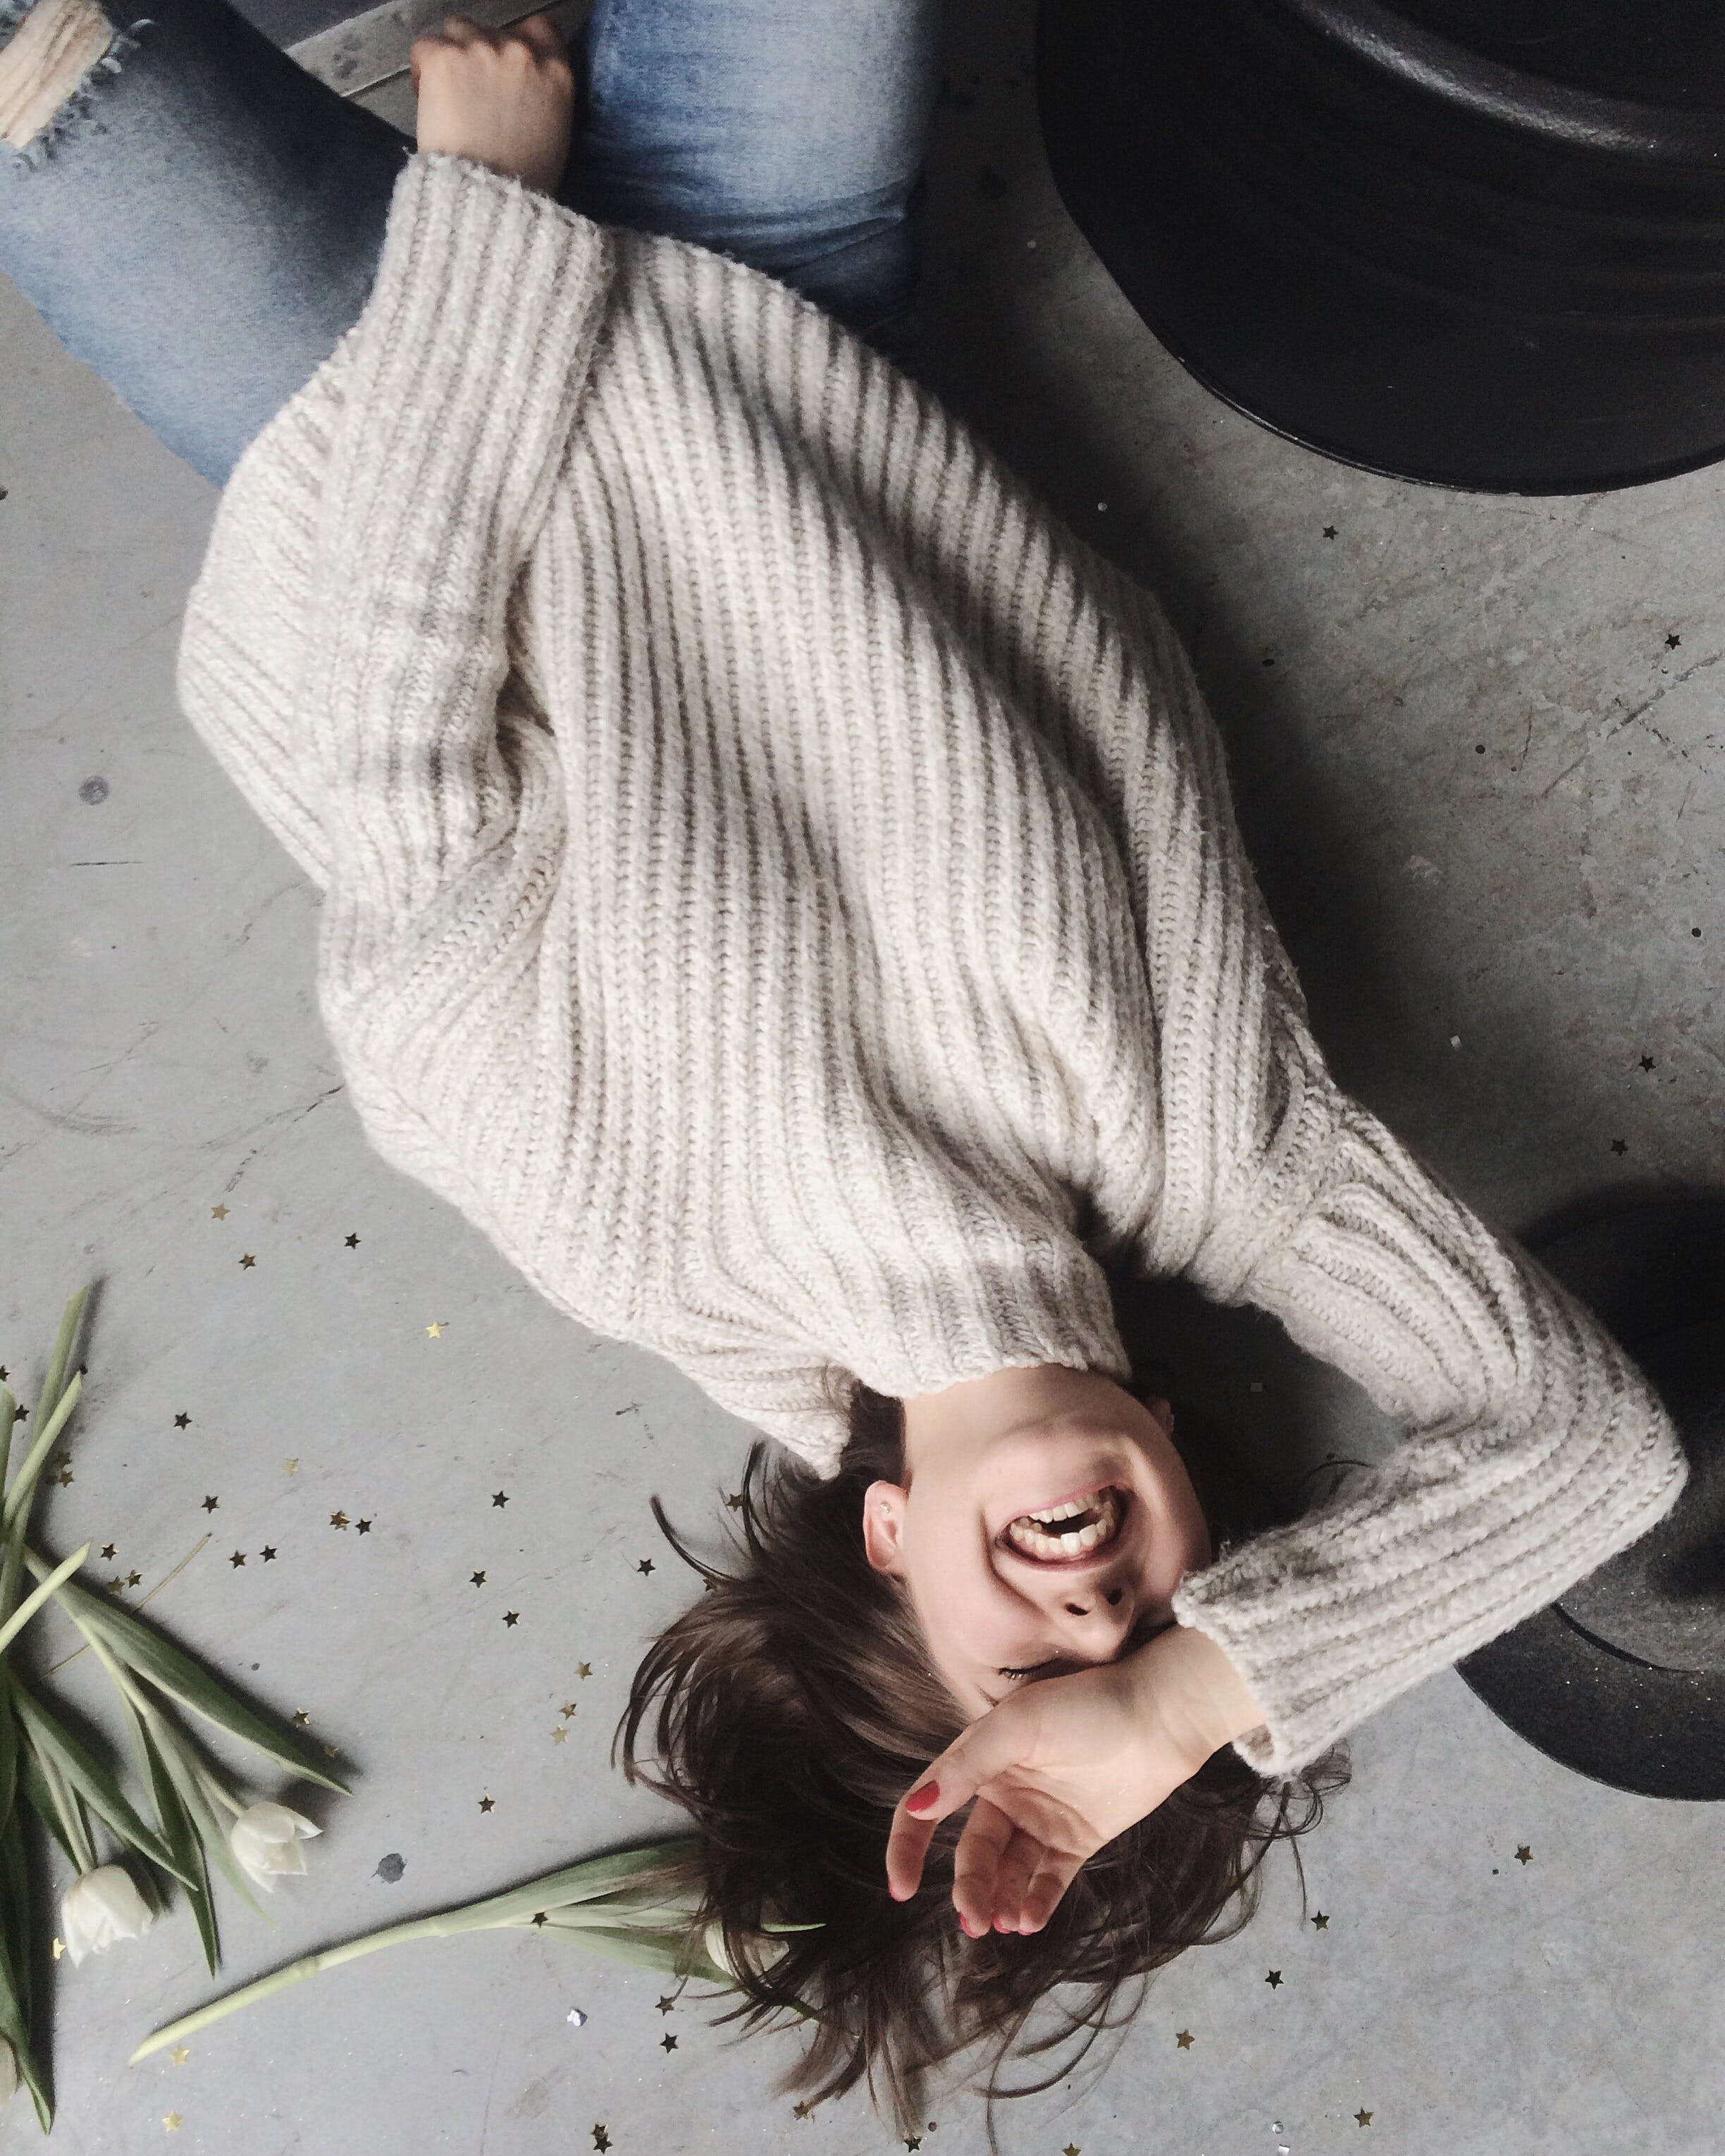 Woman Wearing Gray Sweater Lying on Gray Surface